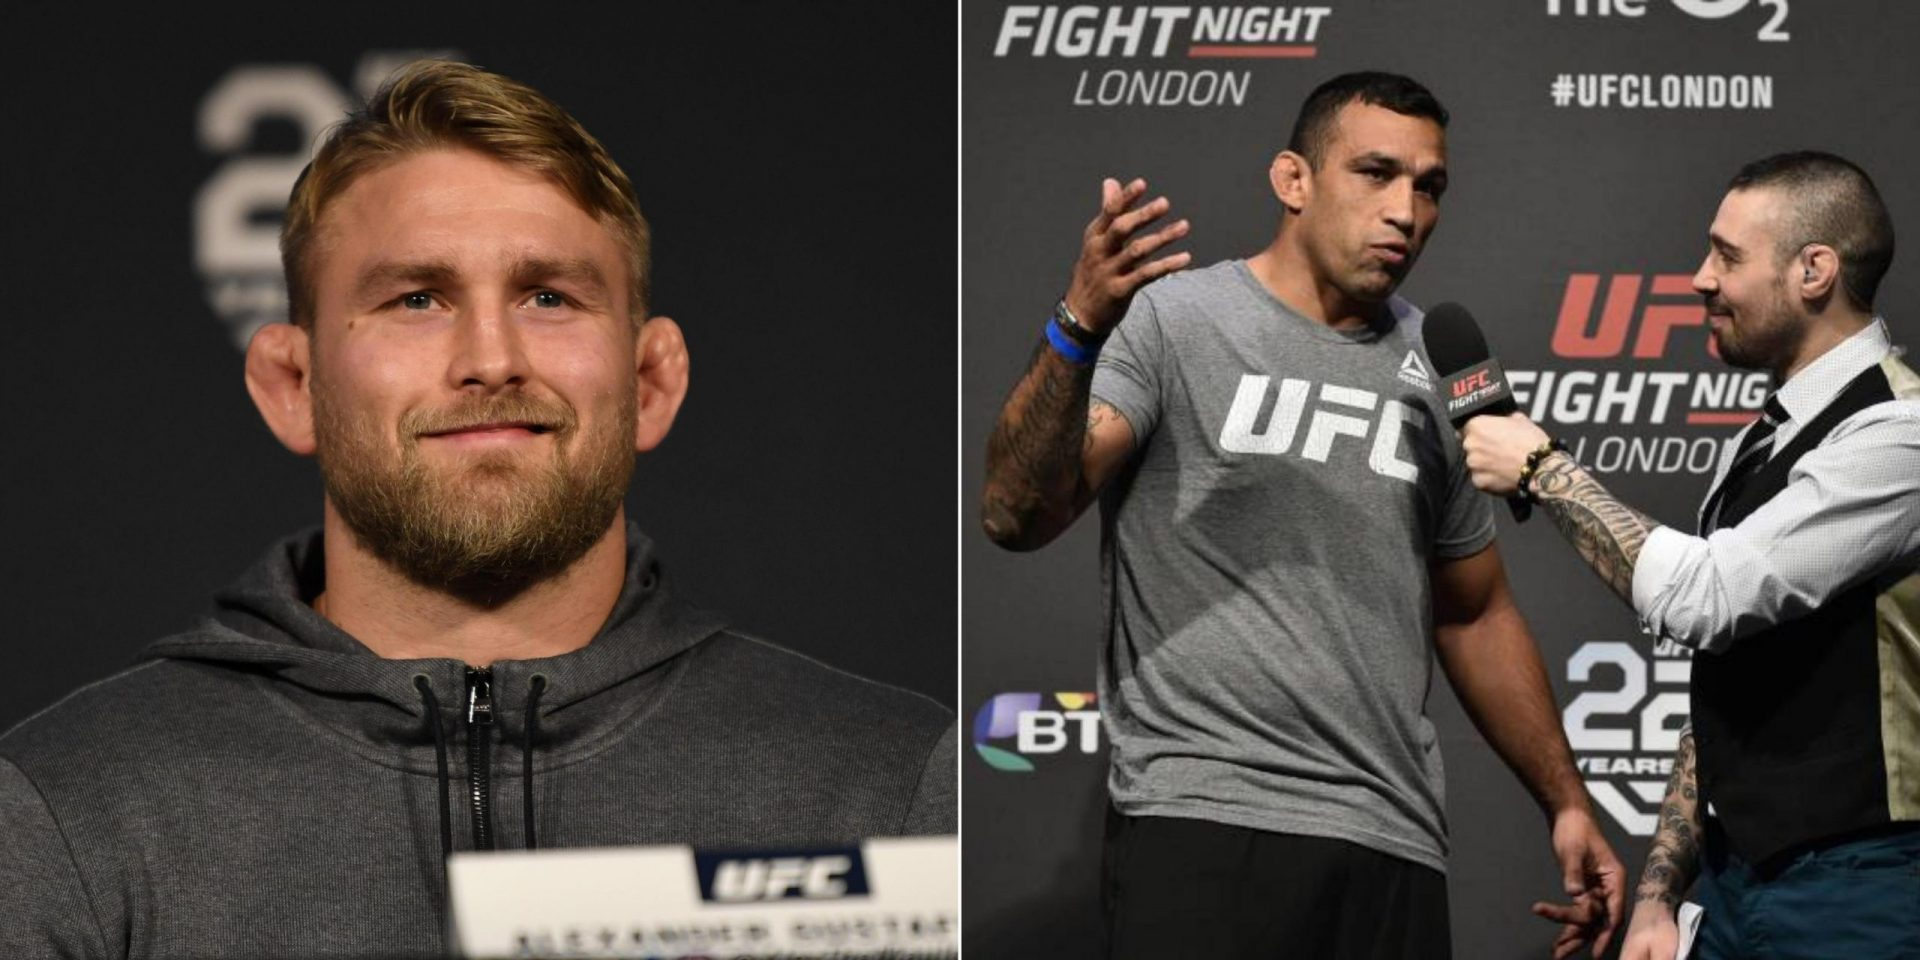 Fabricio Werdum takes a shot at Alexander Gustafsson over past sparring and broken nose claims - Fabricio Werdum